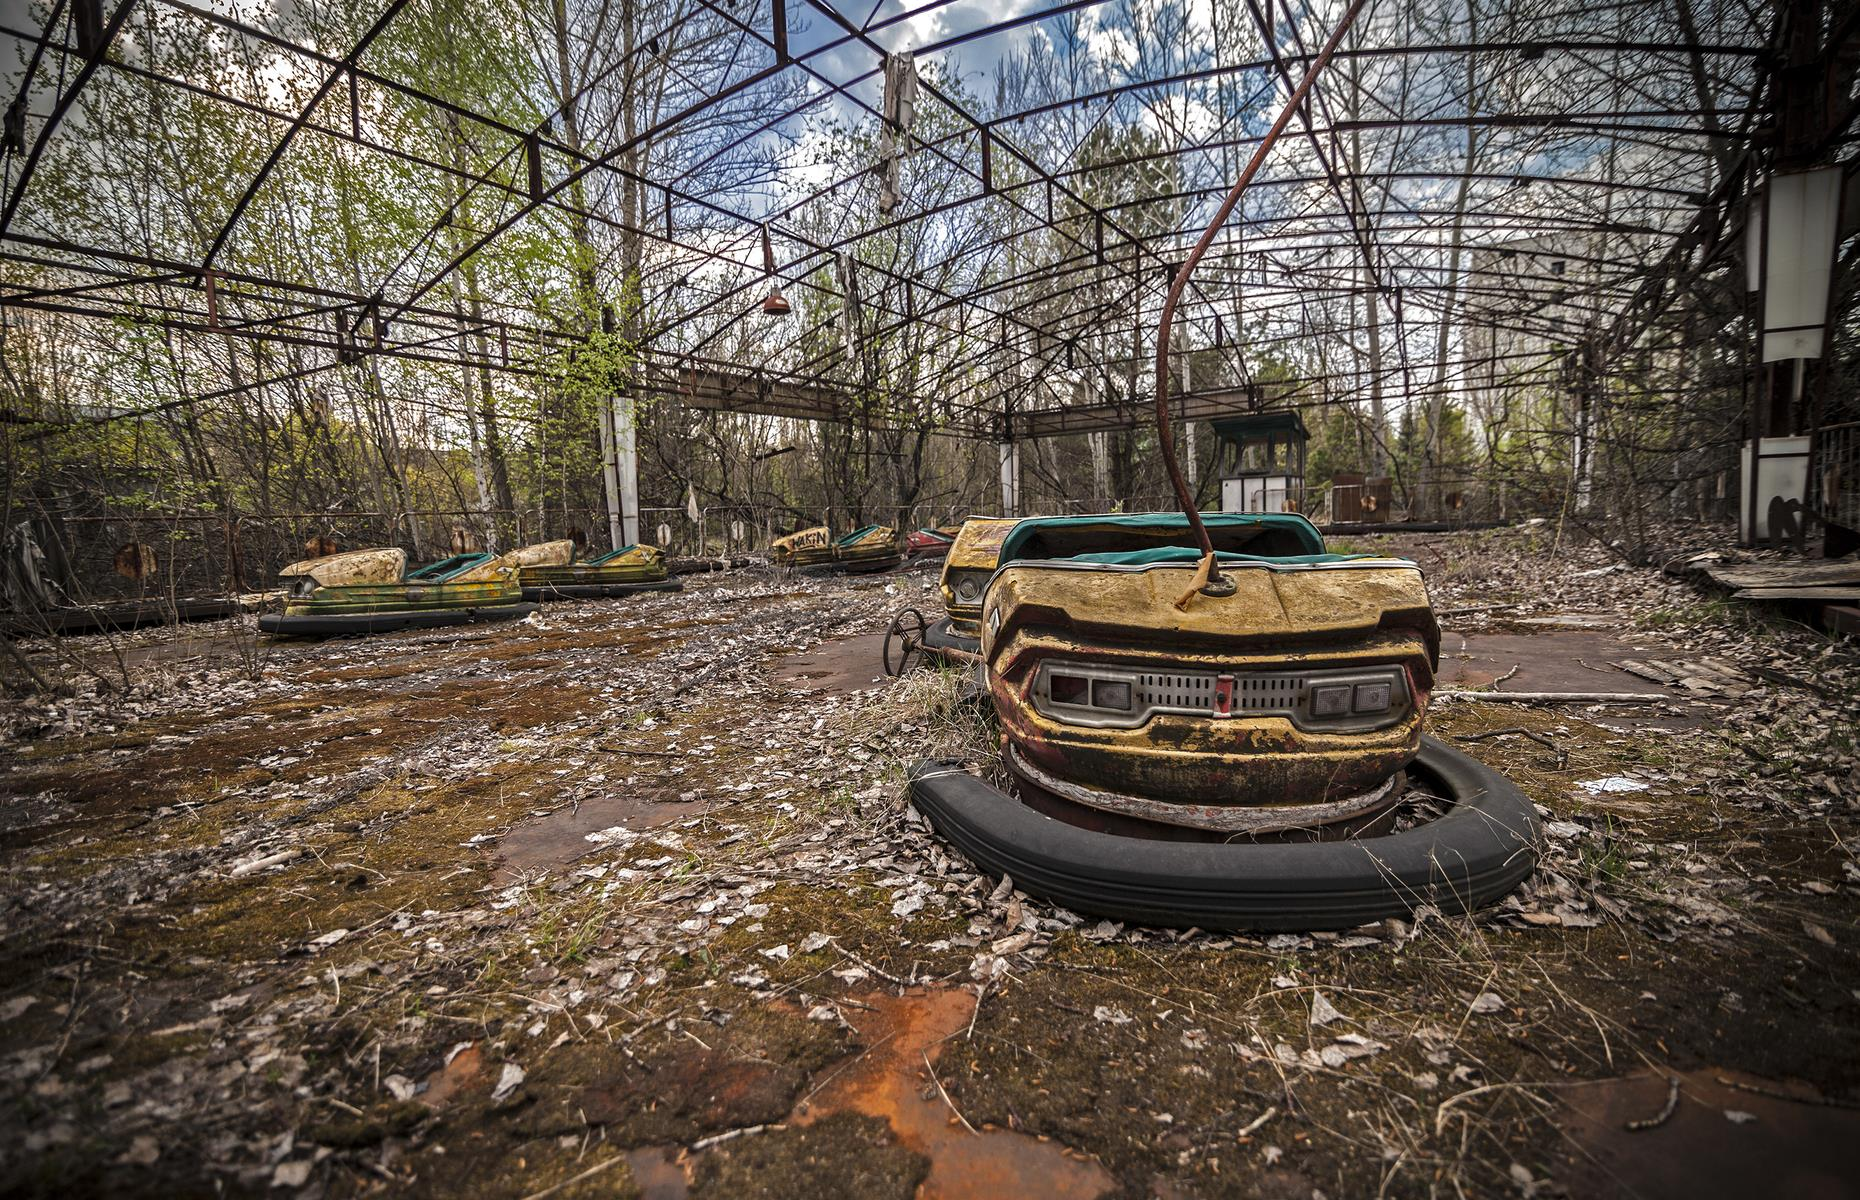 Slide 48 of 51: The creepy scenes at this amusement park in Pripyat paint a stark picture of the impact of the 1986 Chernobyl disaster. The amusement park was supposed to open four days after the explosion, but never welcomed any guests in what was regarded as a model Soviet town.